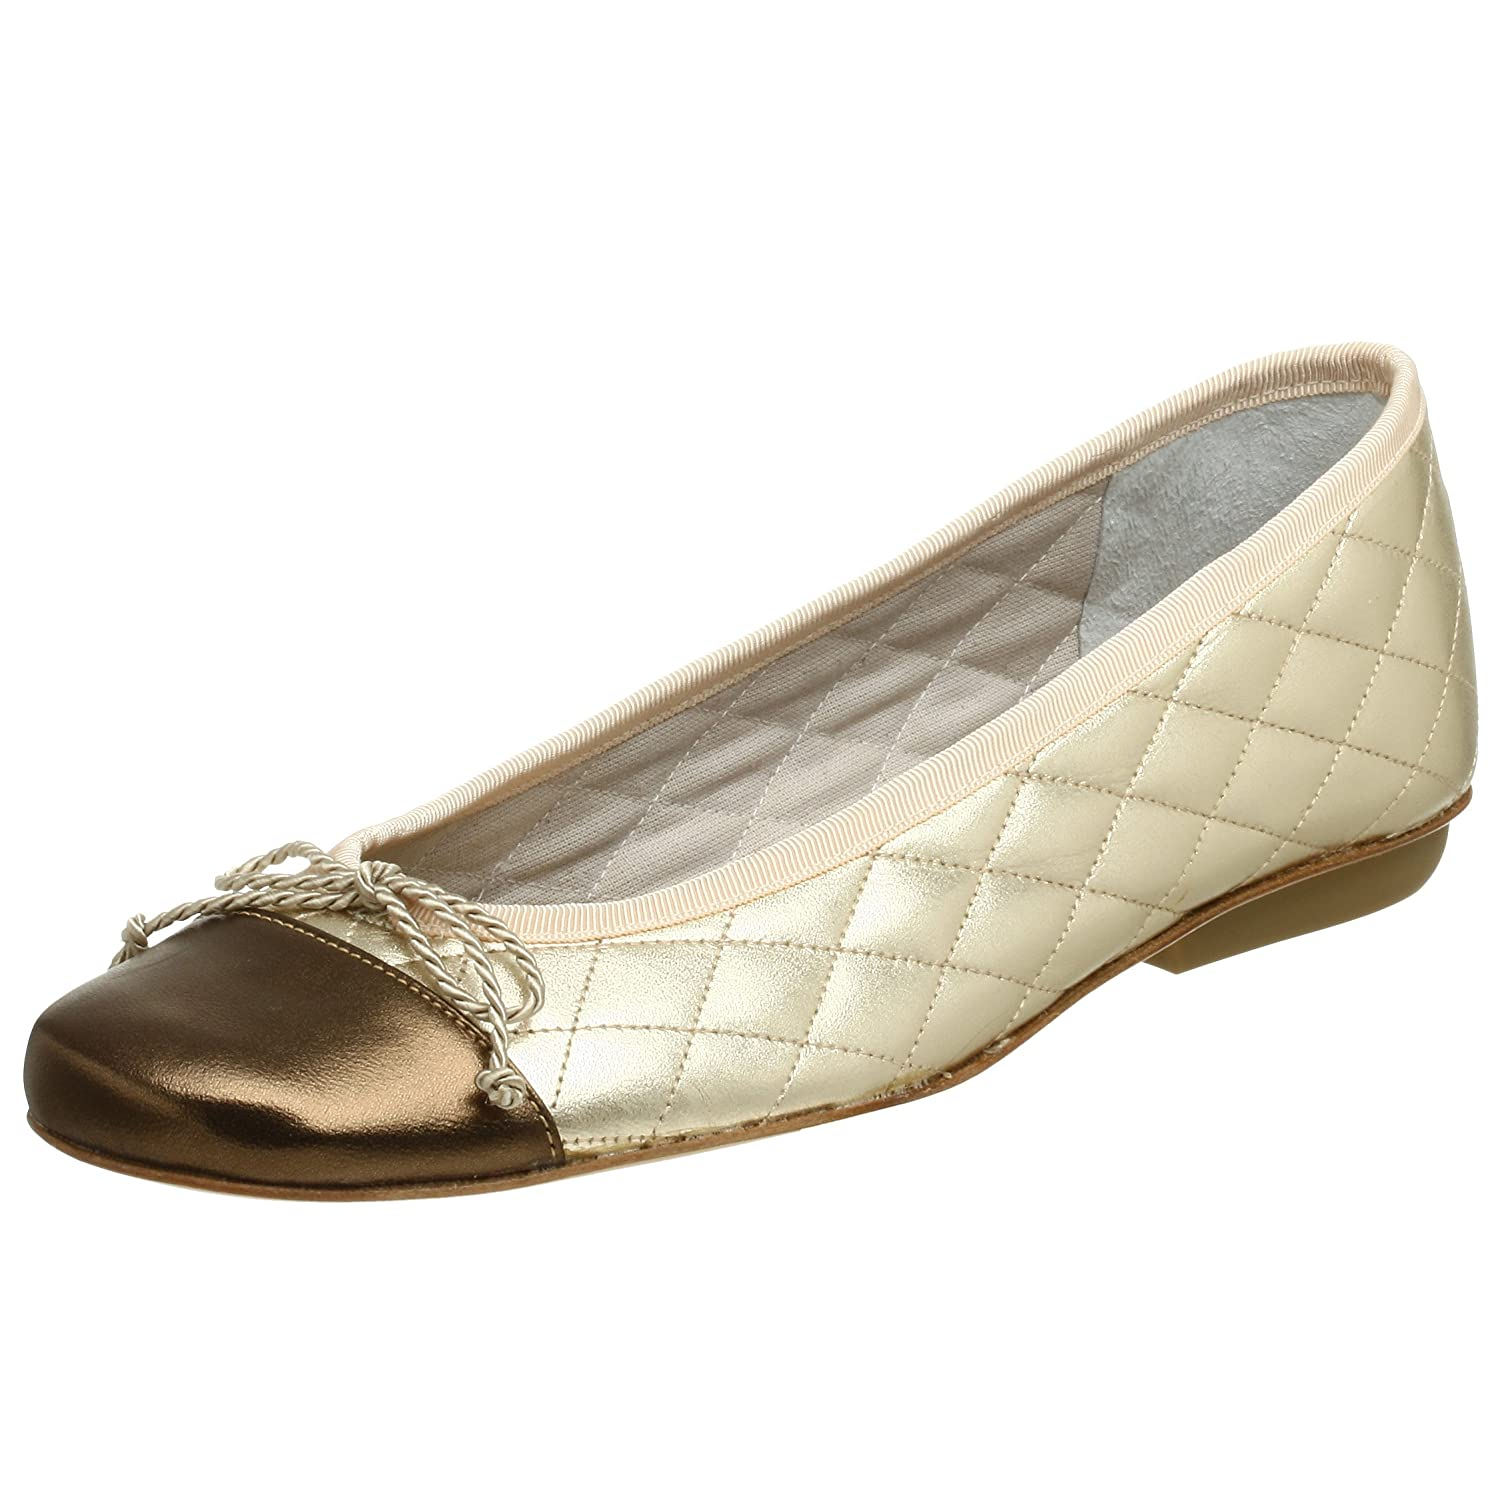 French Sole FS/NY Women's Passport Ballet Flat B0012EPN8C 6 B(M) US|Pewter/Gold